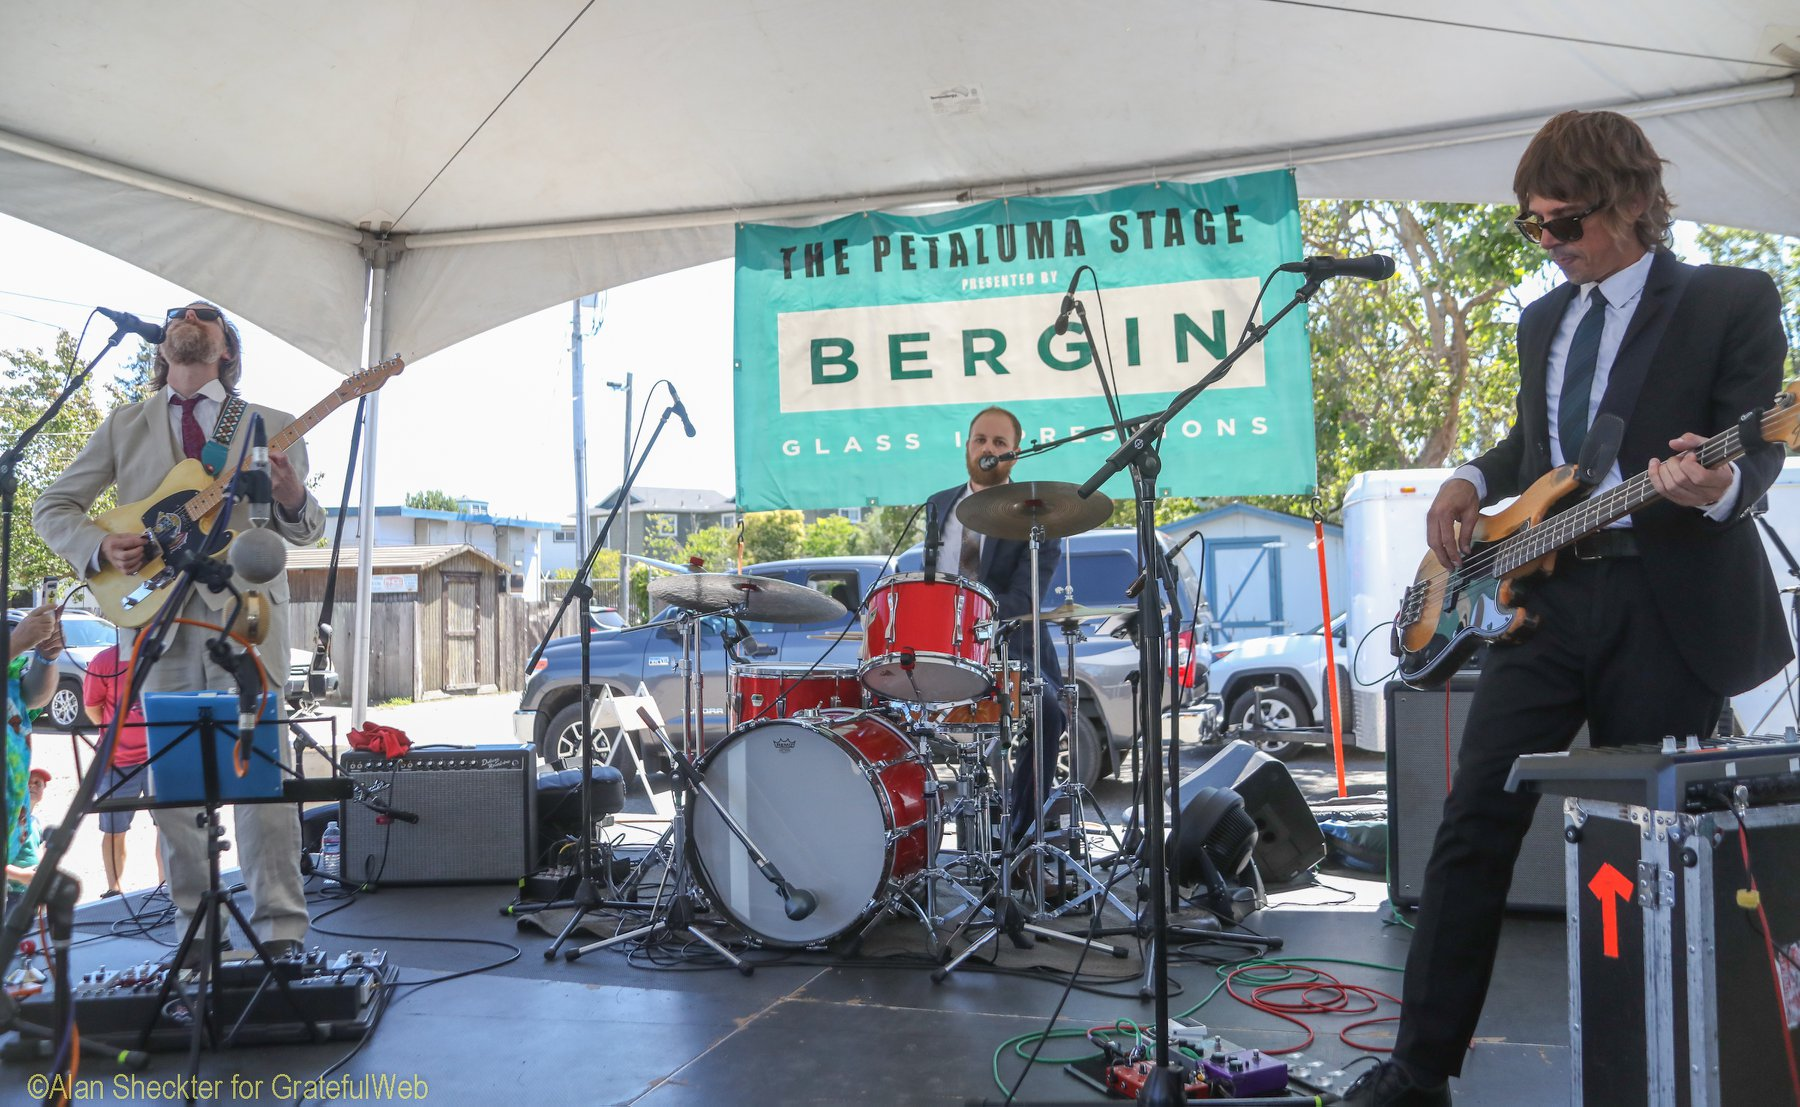 Magic In the Other -- Petaluma Stage | Petaluma Music Festival